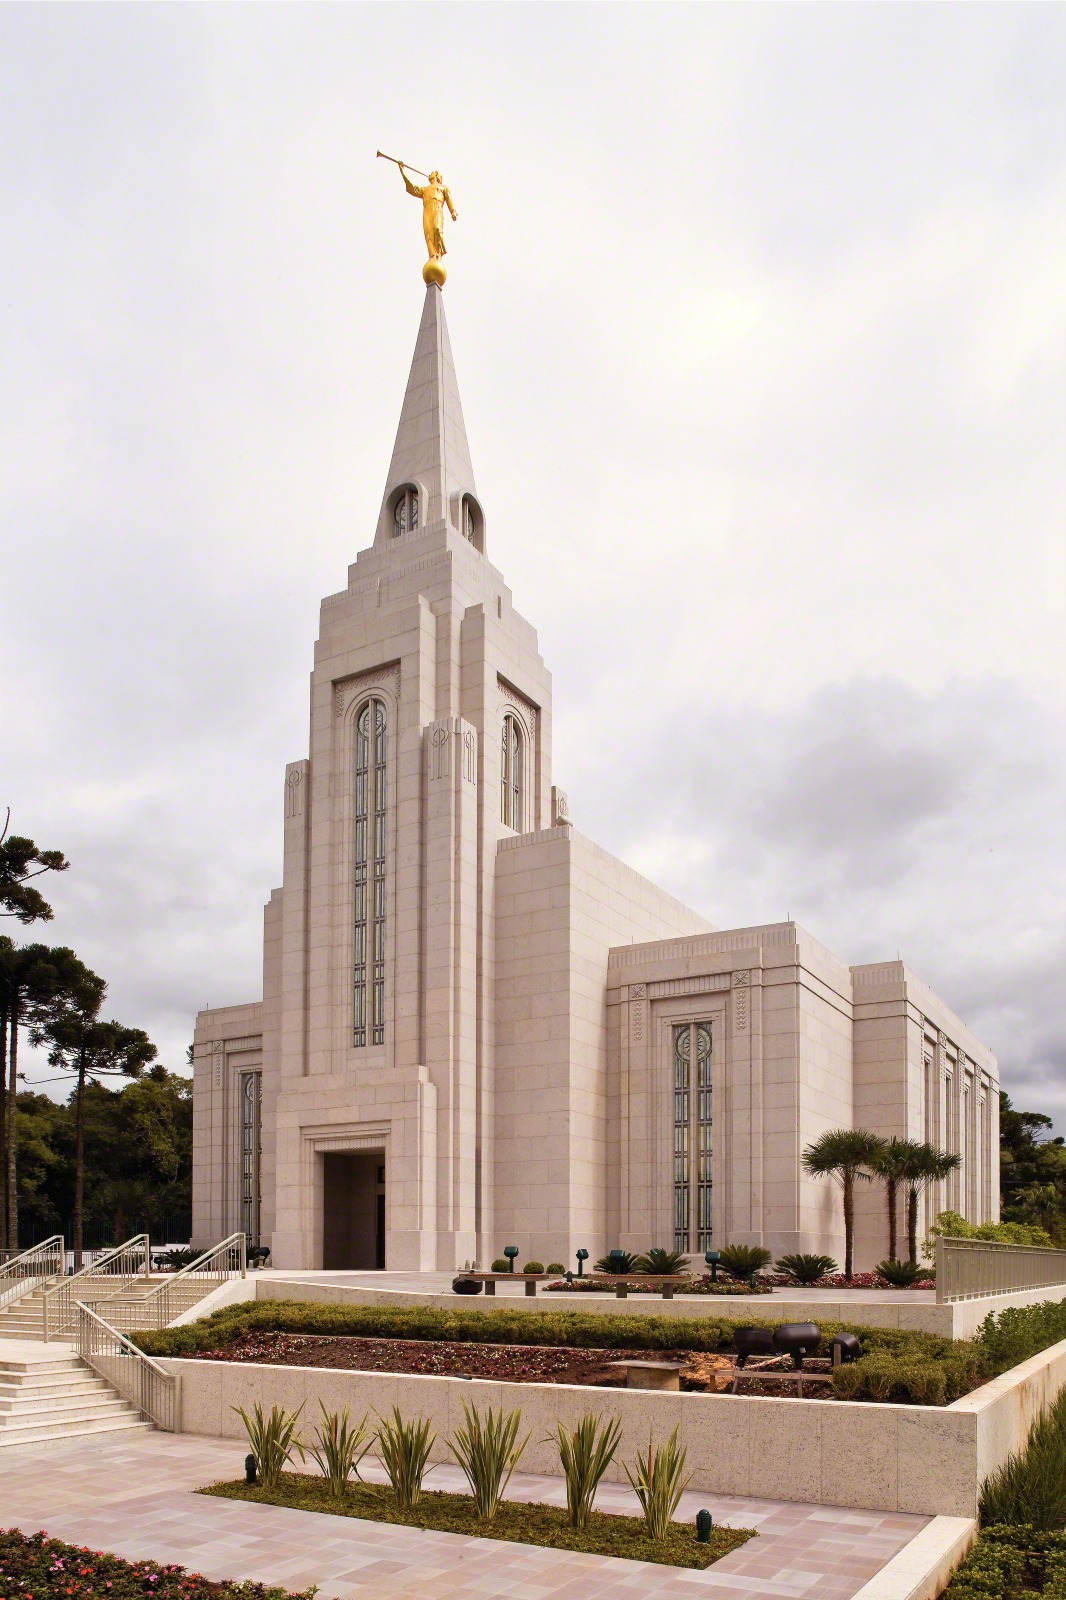 Inspirational Quotes Wallpaper Pinterest The Curitiba Brazil Temple During The Day